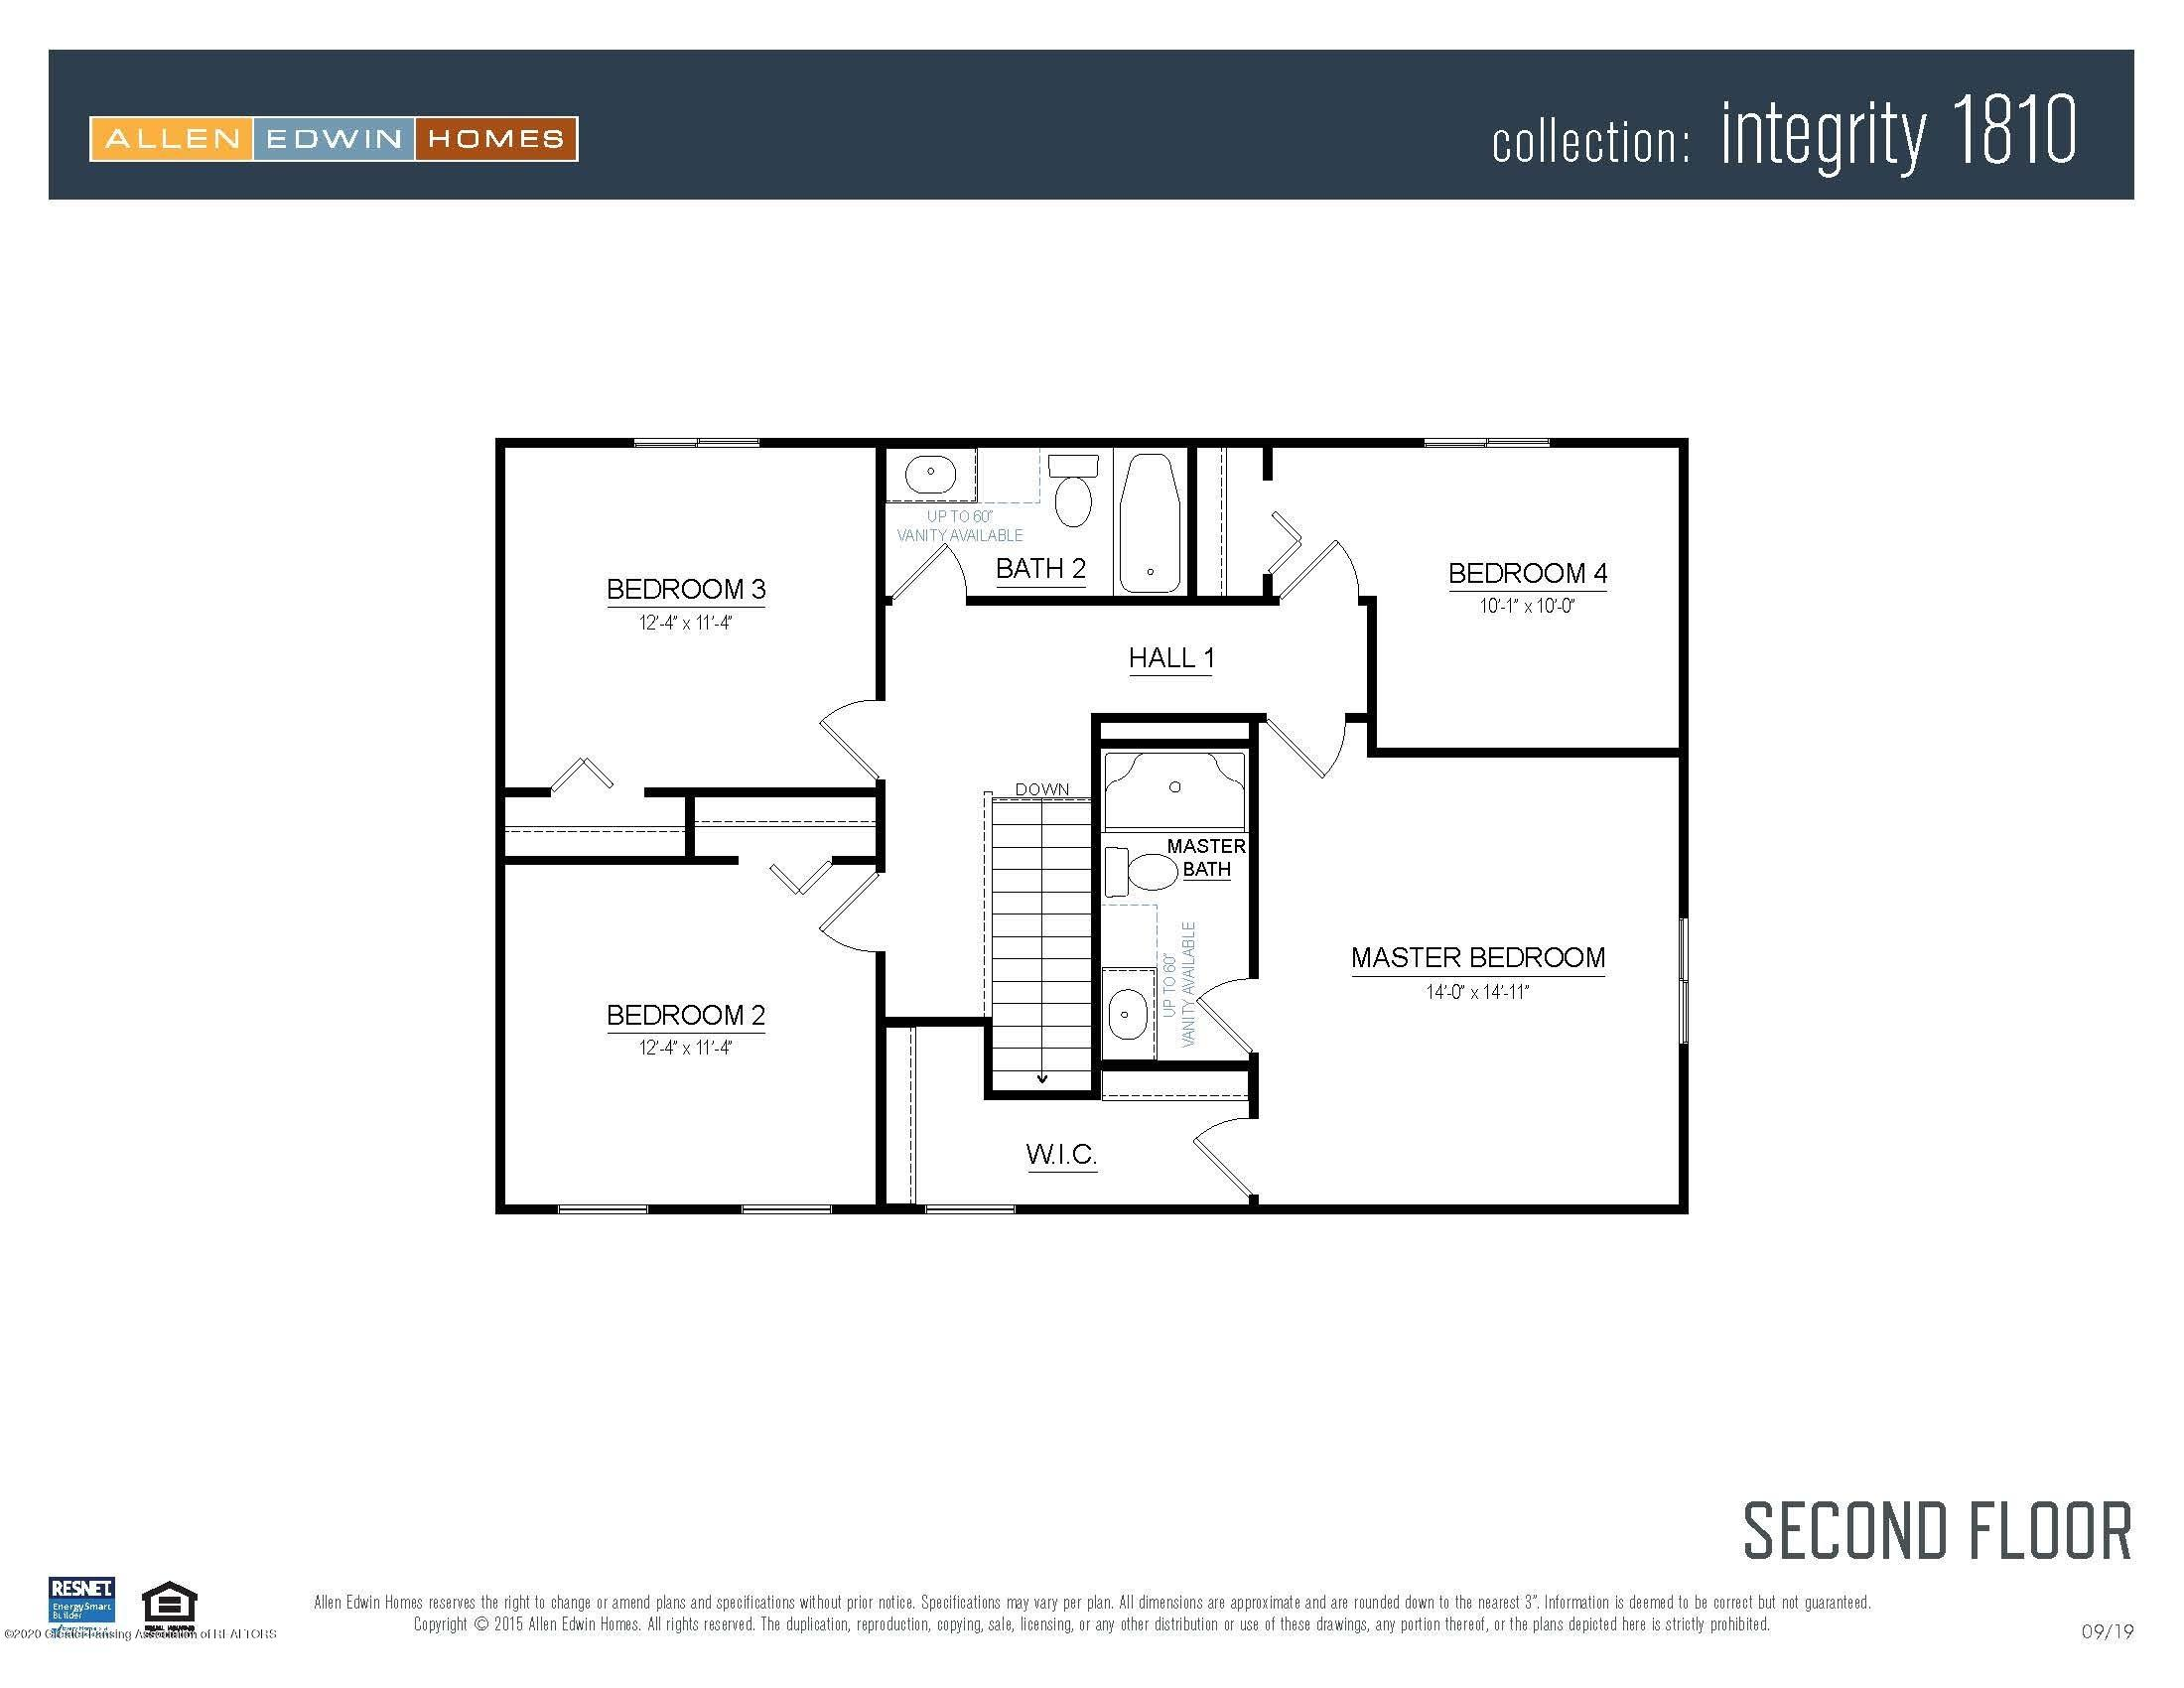 887 St Johns Chase - Integrity 1810 V8.1a Second Floor - 21